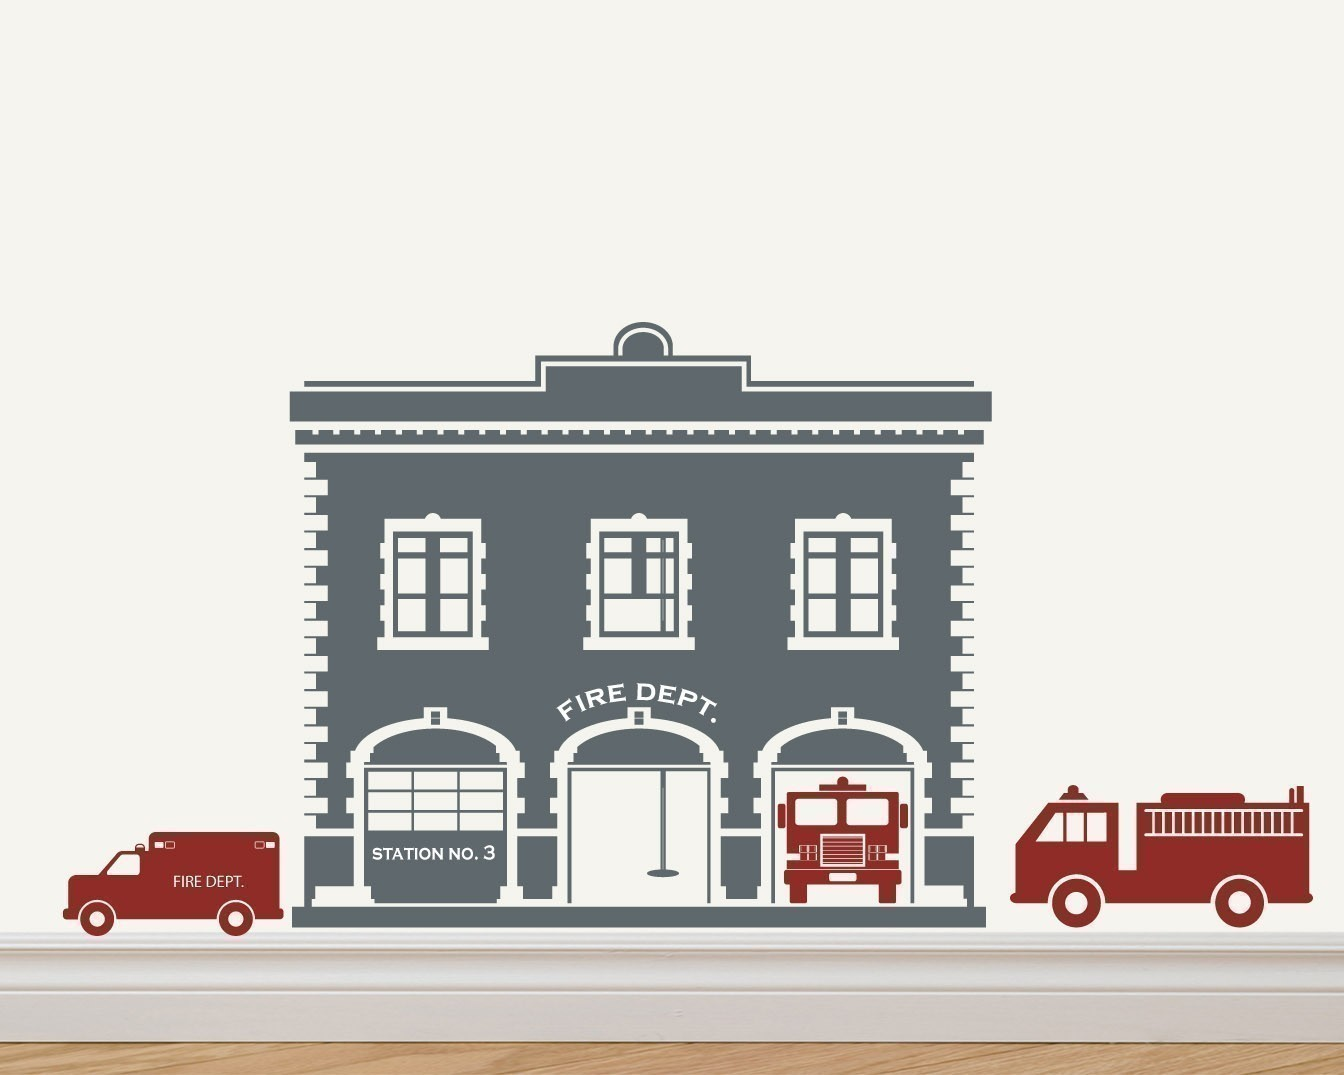 hight resolution of  the best free fire truck drawing images download from 50 free 1344x1075 fire station